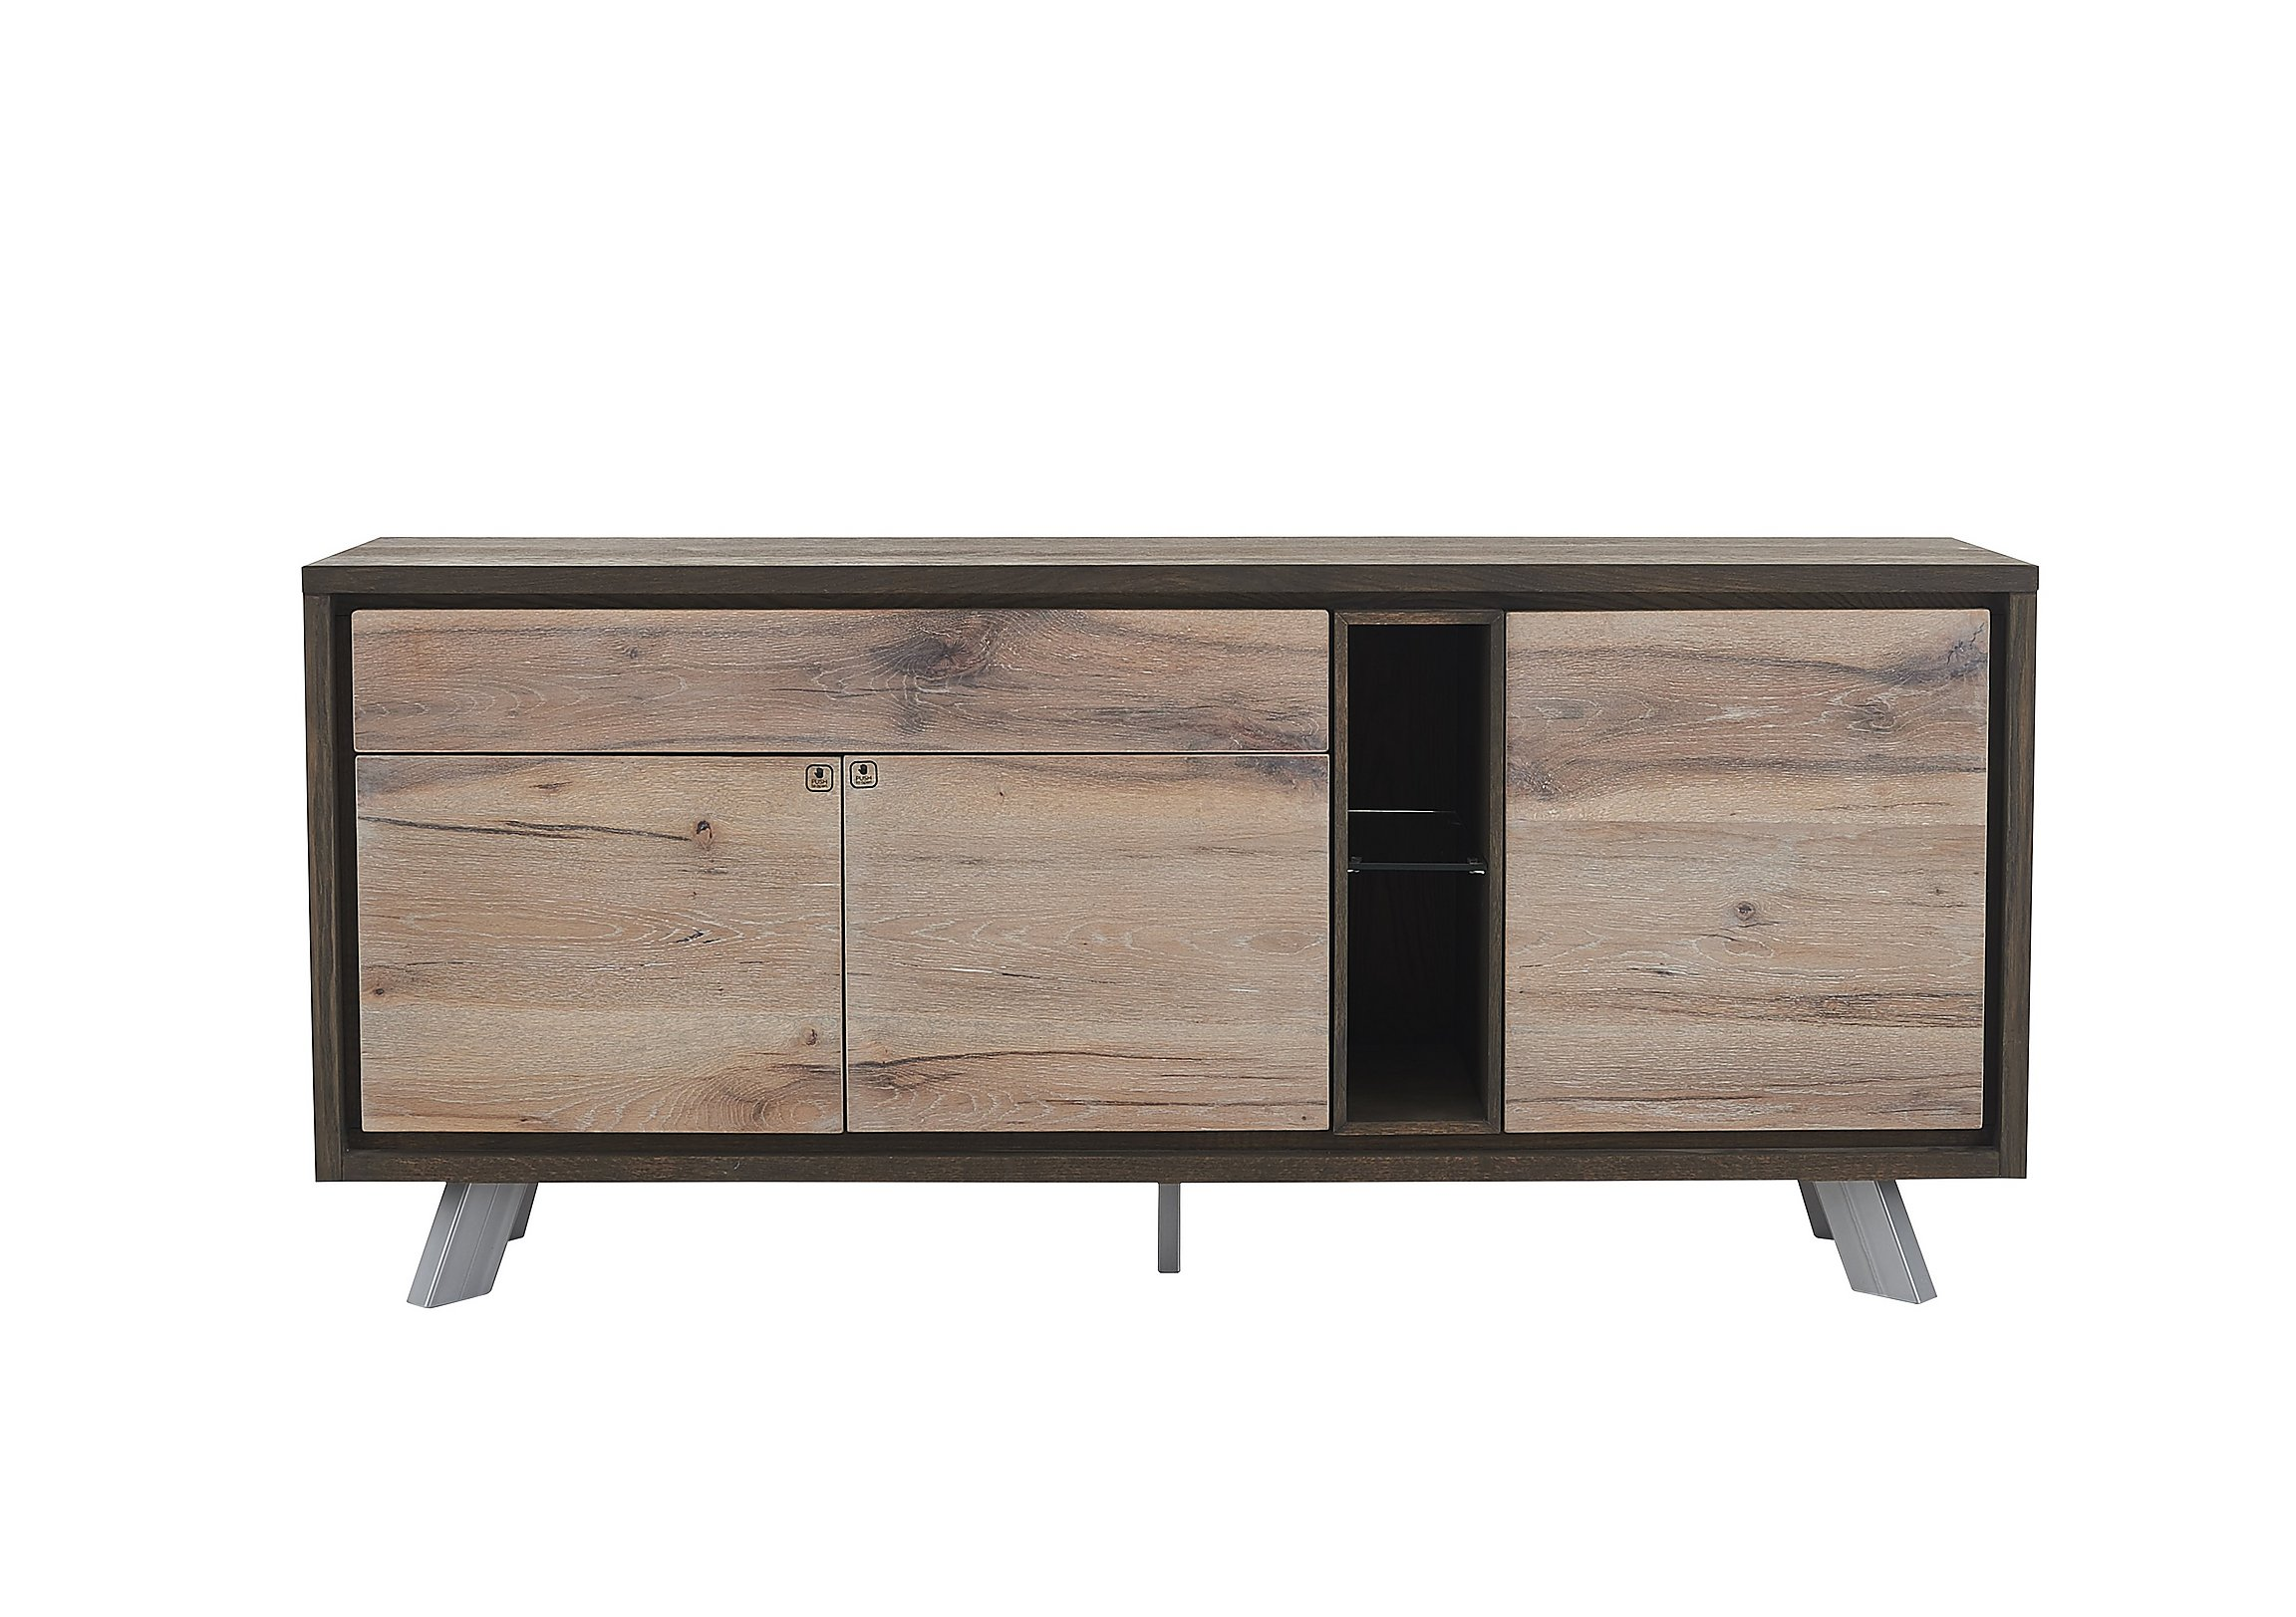 reclaimed prod material rotsen tamburil rectangular wooden contemporary product sideboard furniture table in